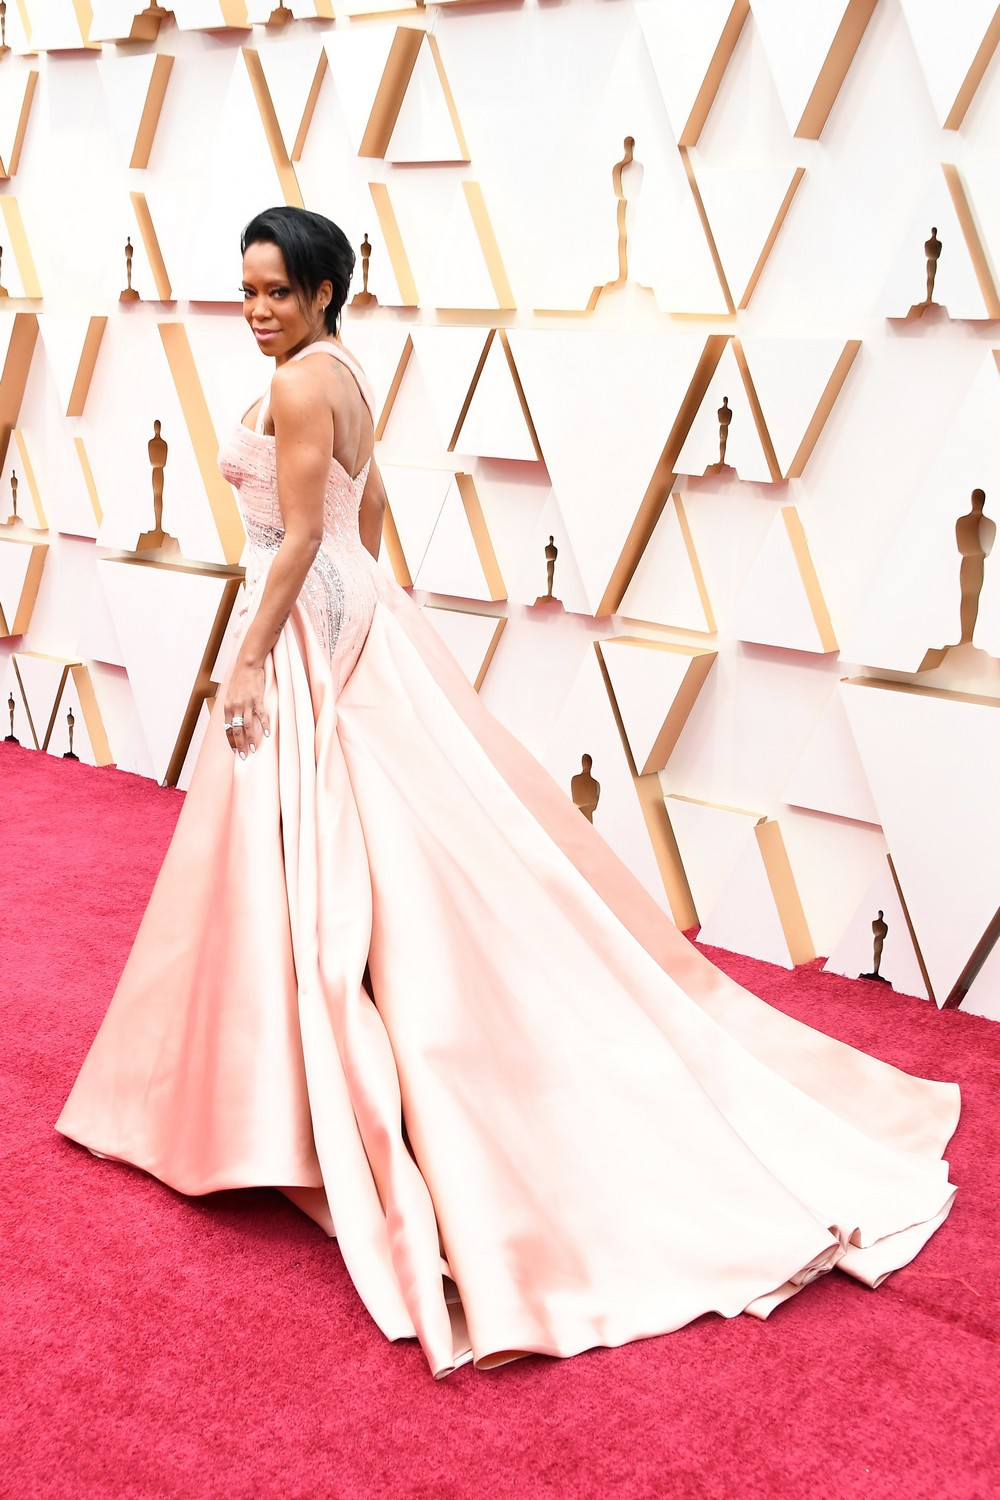 oscars 2020 Oscars 2020: Statement Sleeves in Fashion on the Red Carpet Oscars 2020 Sleeves were Certainly in Fashion at the Red Carpet 4